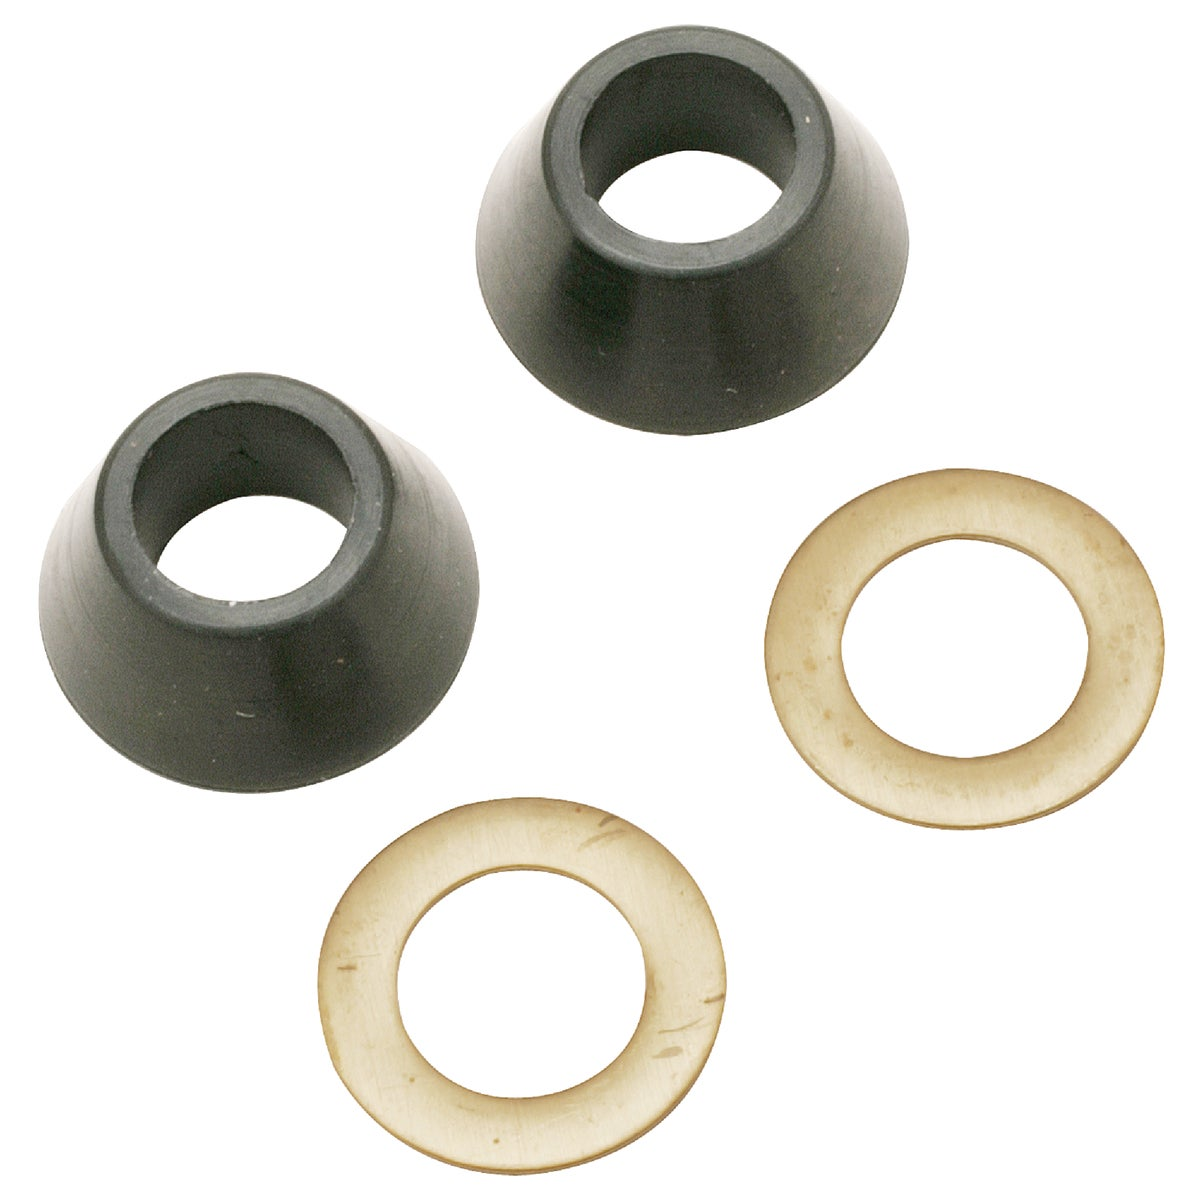 2PK CONE WASHER & RING - 420743 by Plumb Pak/keeney Mfg